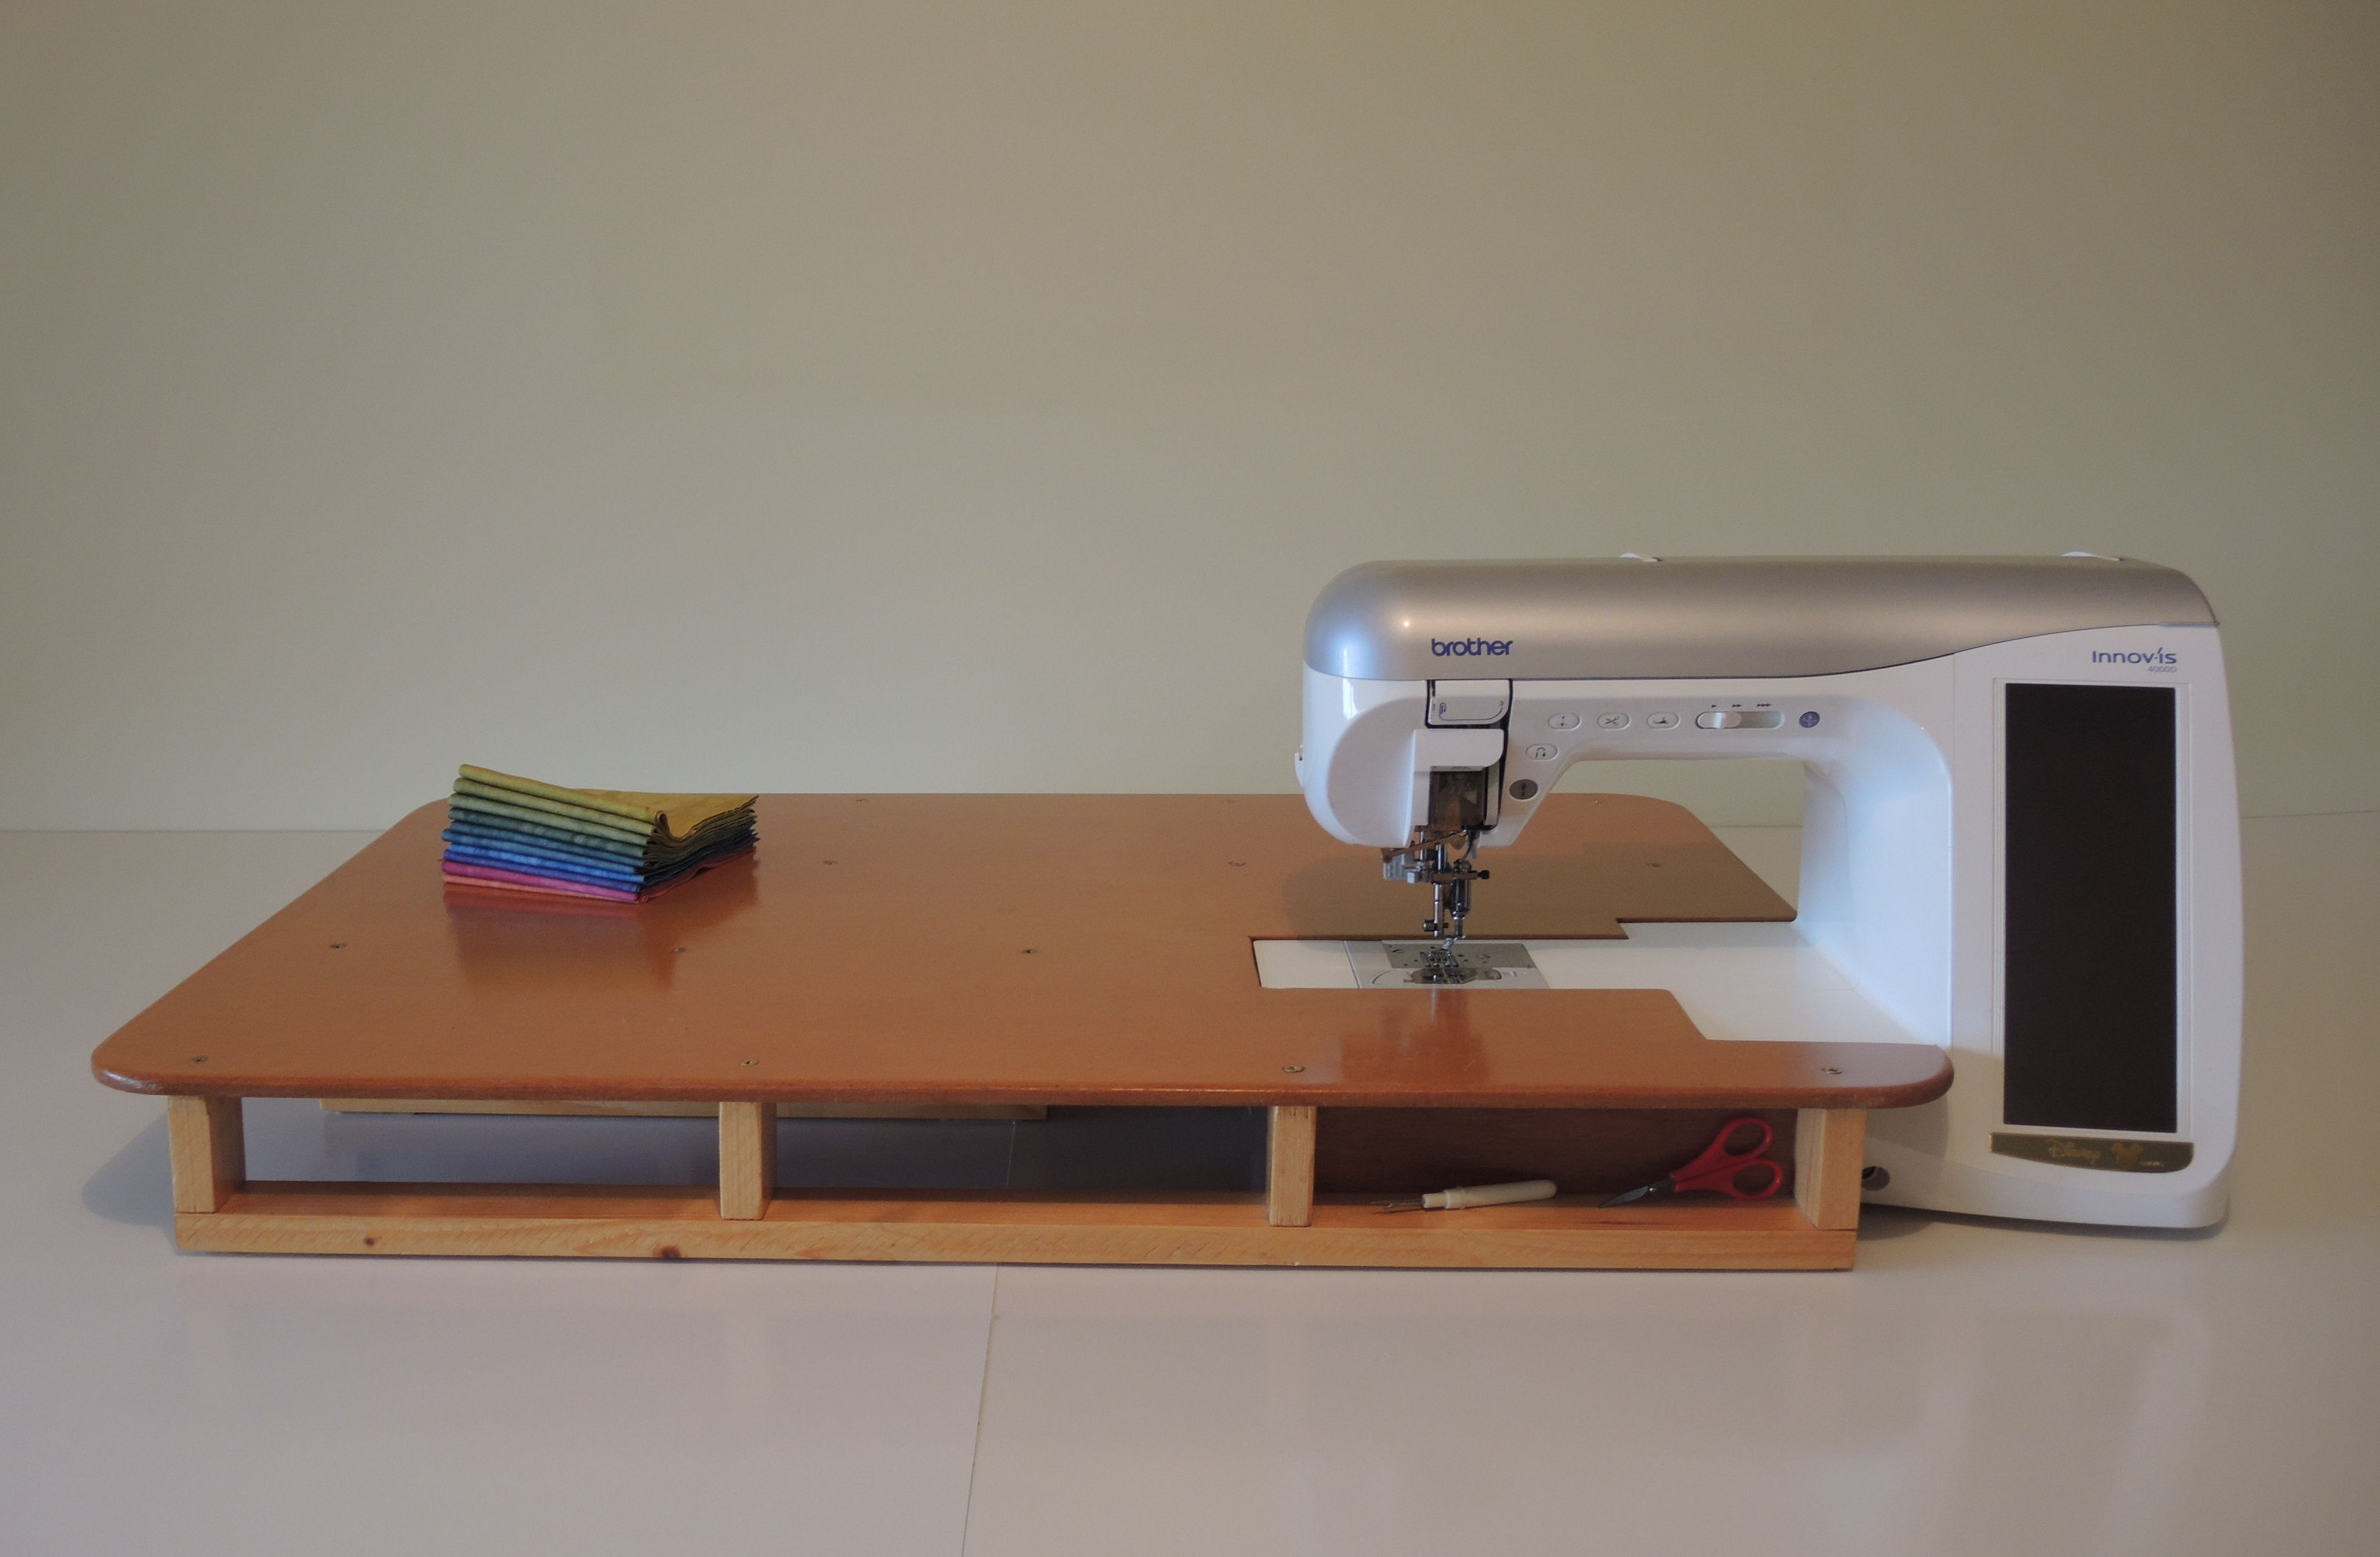 Sewing Machine Extension Table.You Can Also Have A Sewing Machine Extension Table The Same